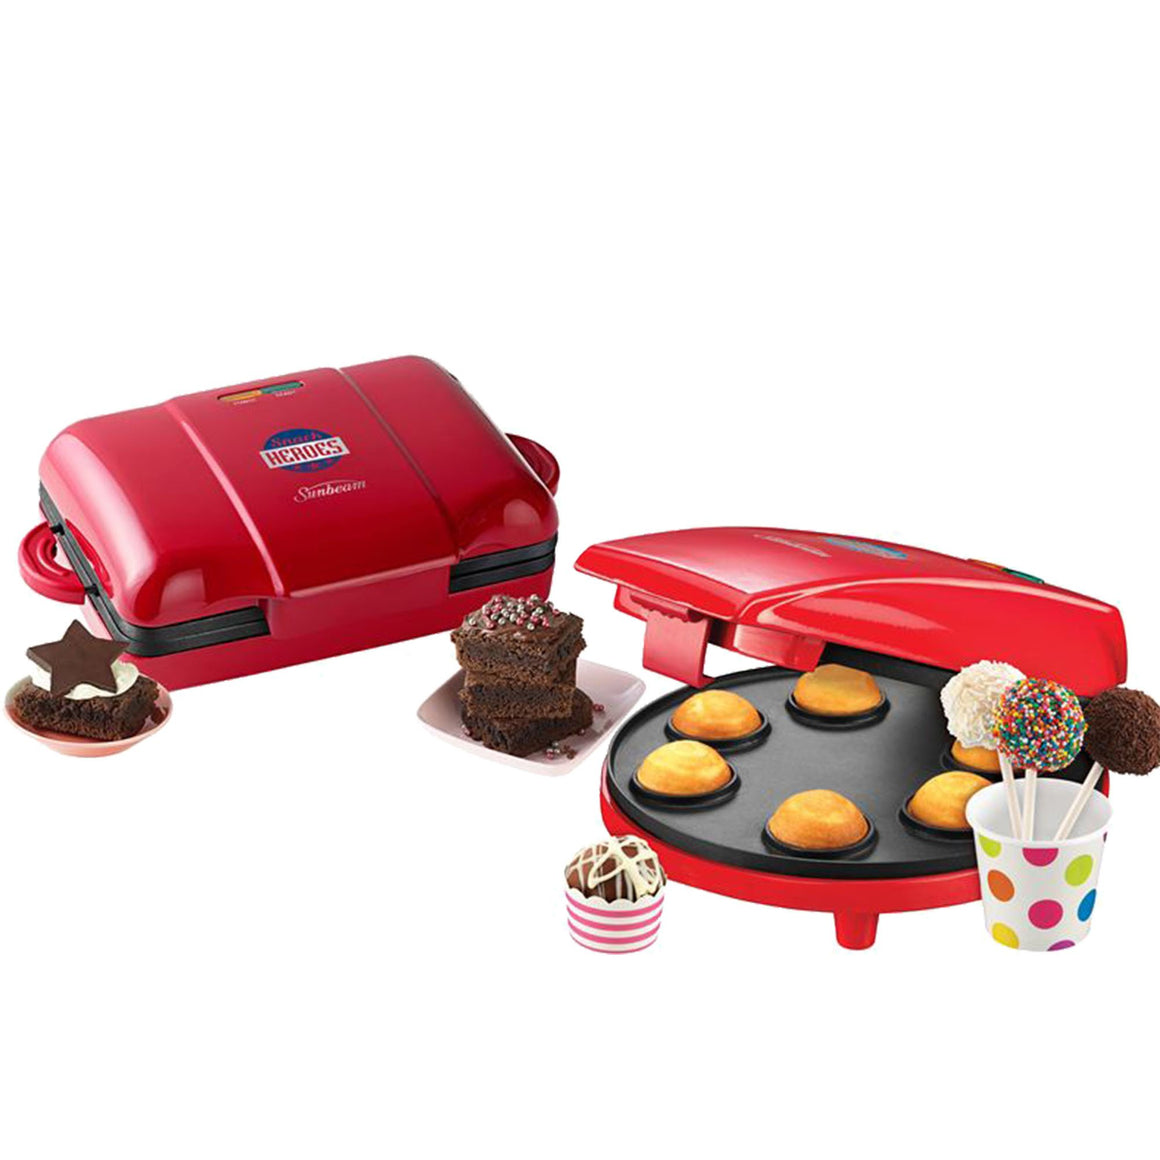 Sunbeam Snack Heroes Brownie & Cake Pop Maker Bundle